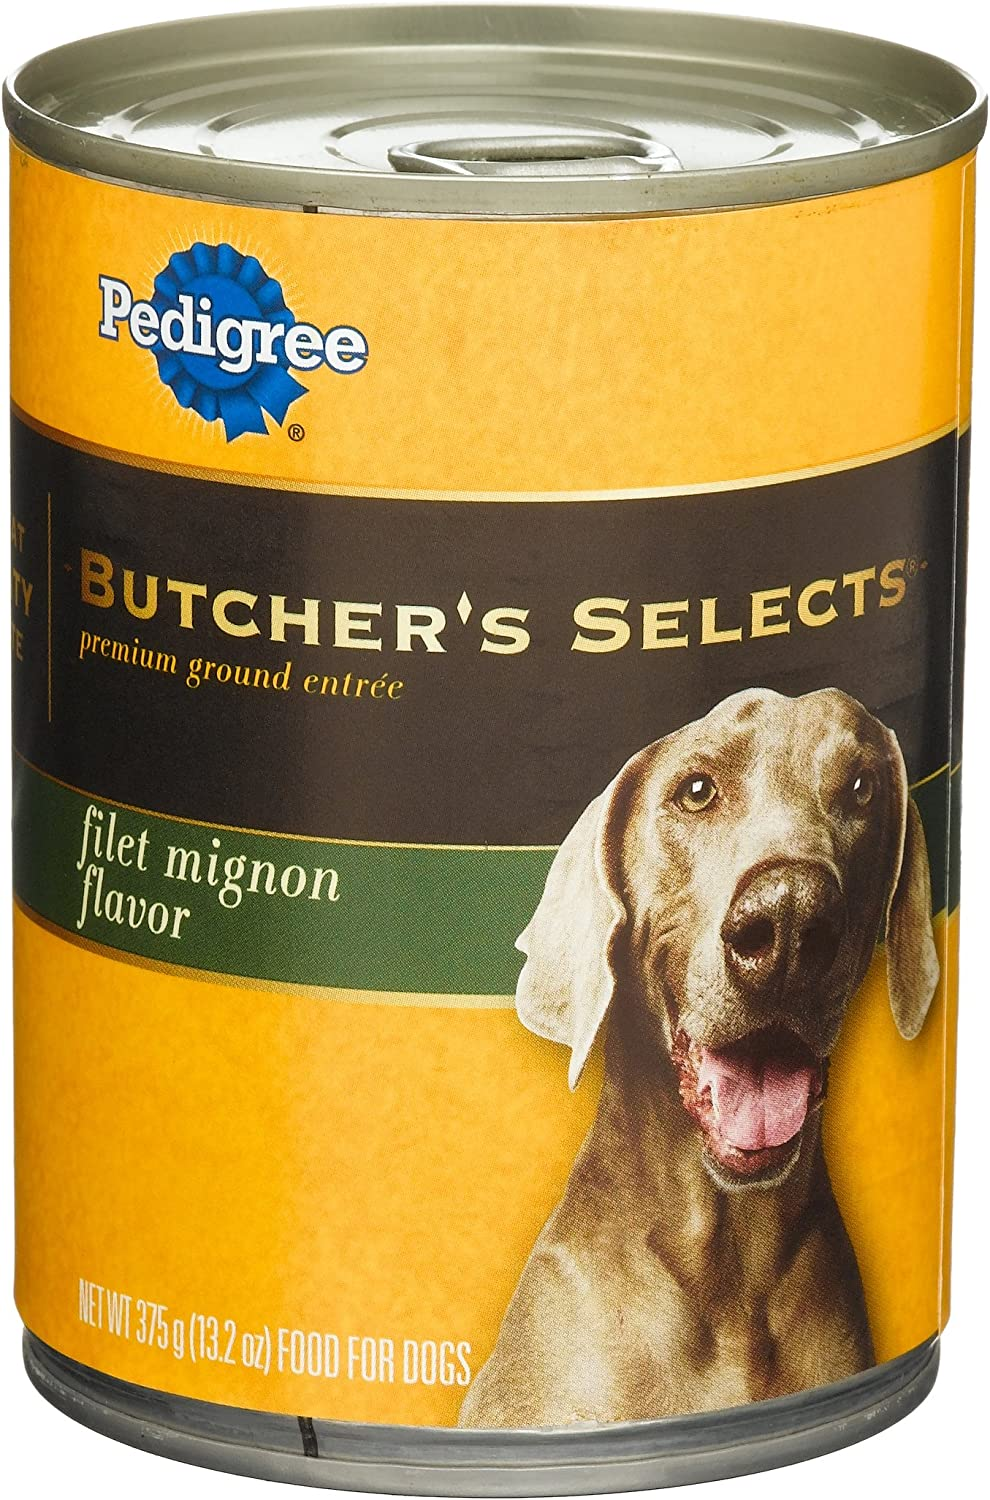 Pedigree Butcher'S Selects Premium Ground Entree Filet Mignon Flavor Food For Dogs, 13.2-Ounce Cans (Pack Of 24)